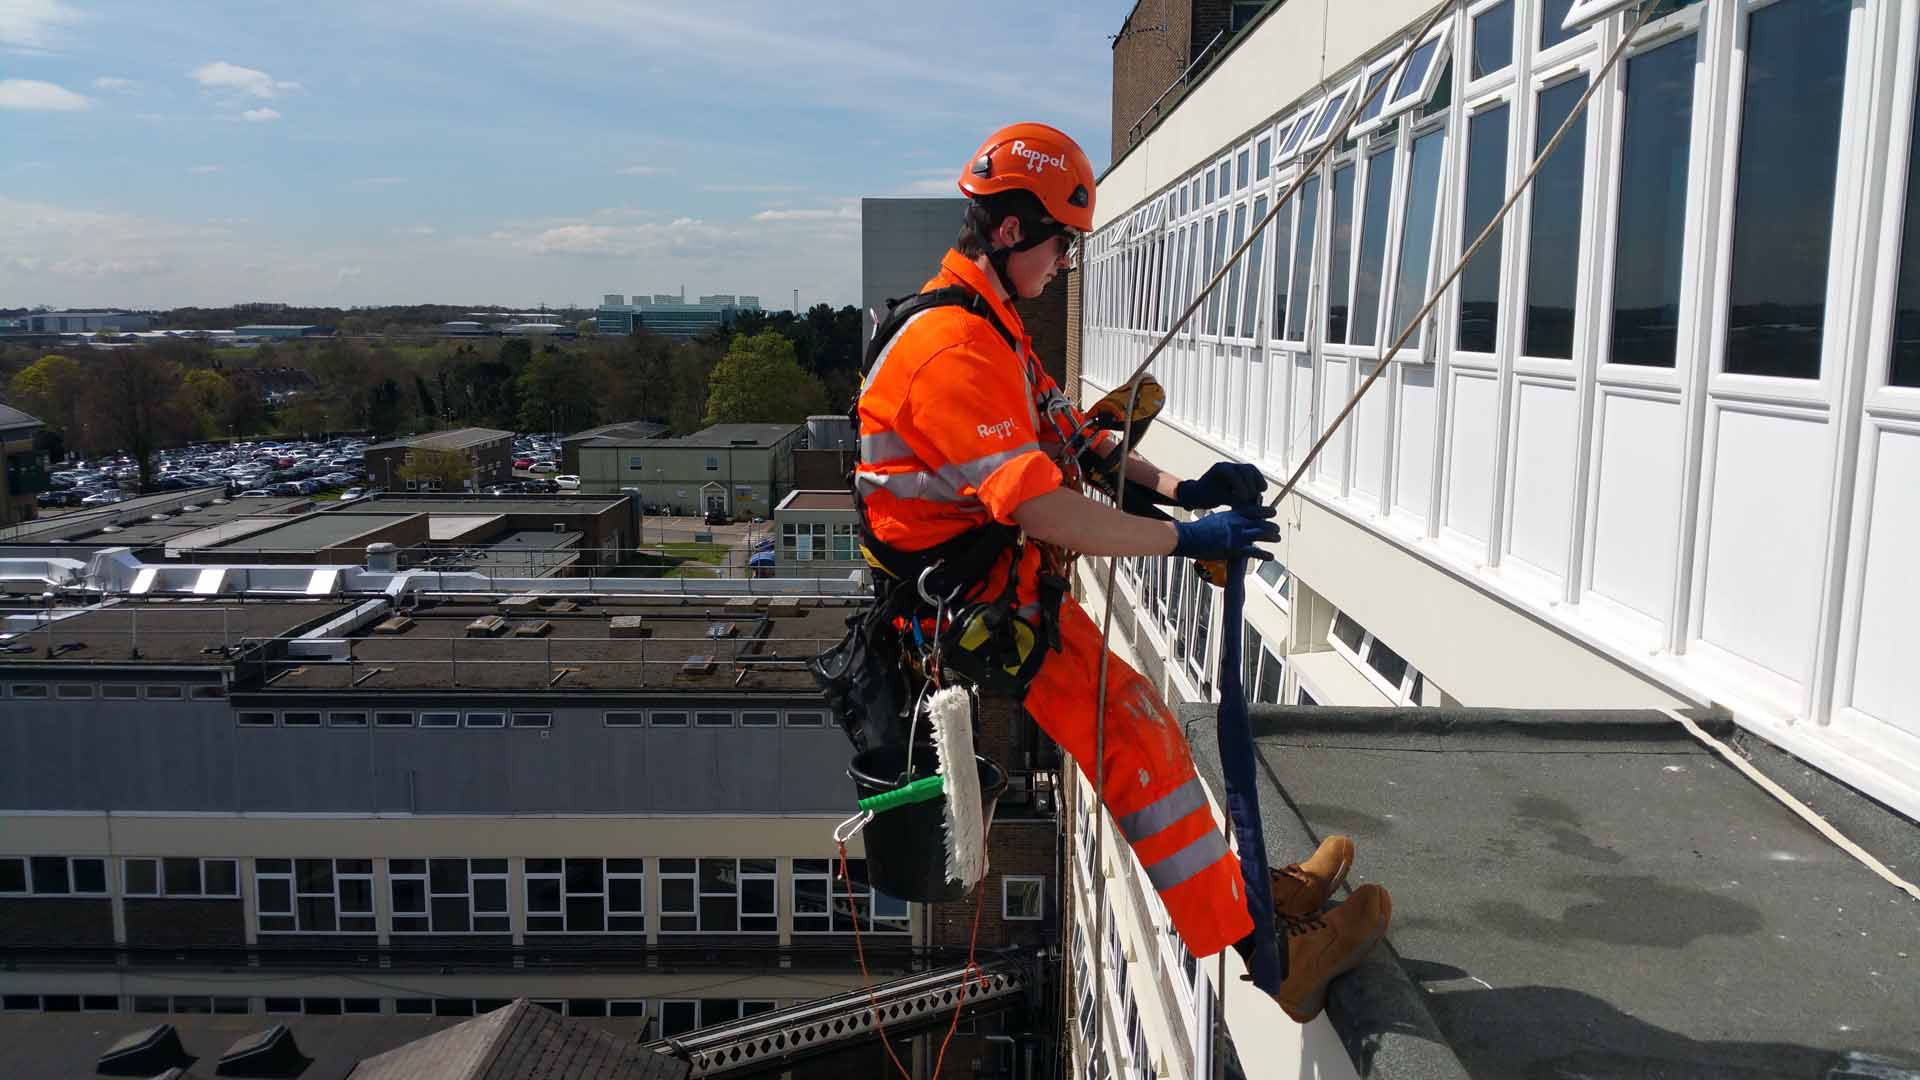 Rappel IRATA Industrial Rope Access Abseiling - Water Ingress Investigation and Remedial Works London